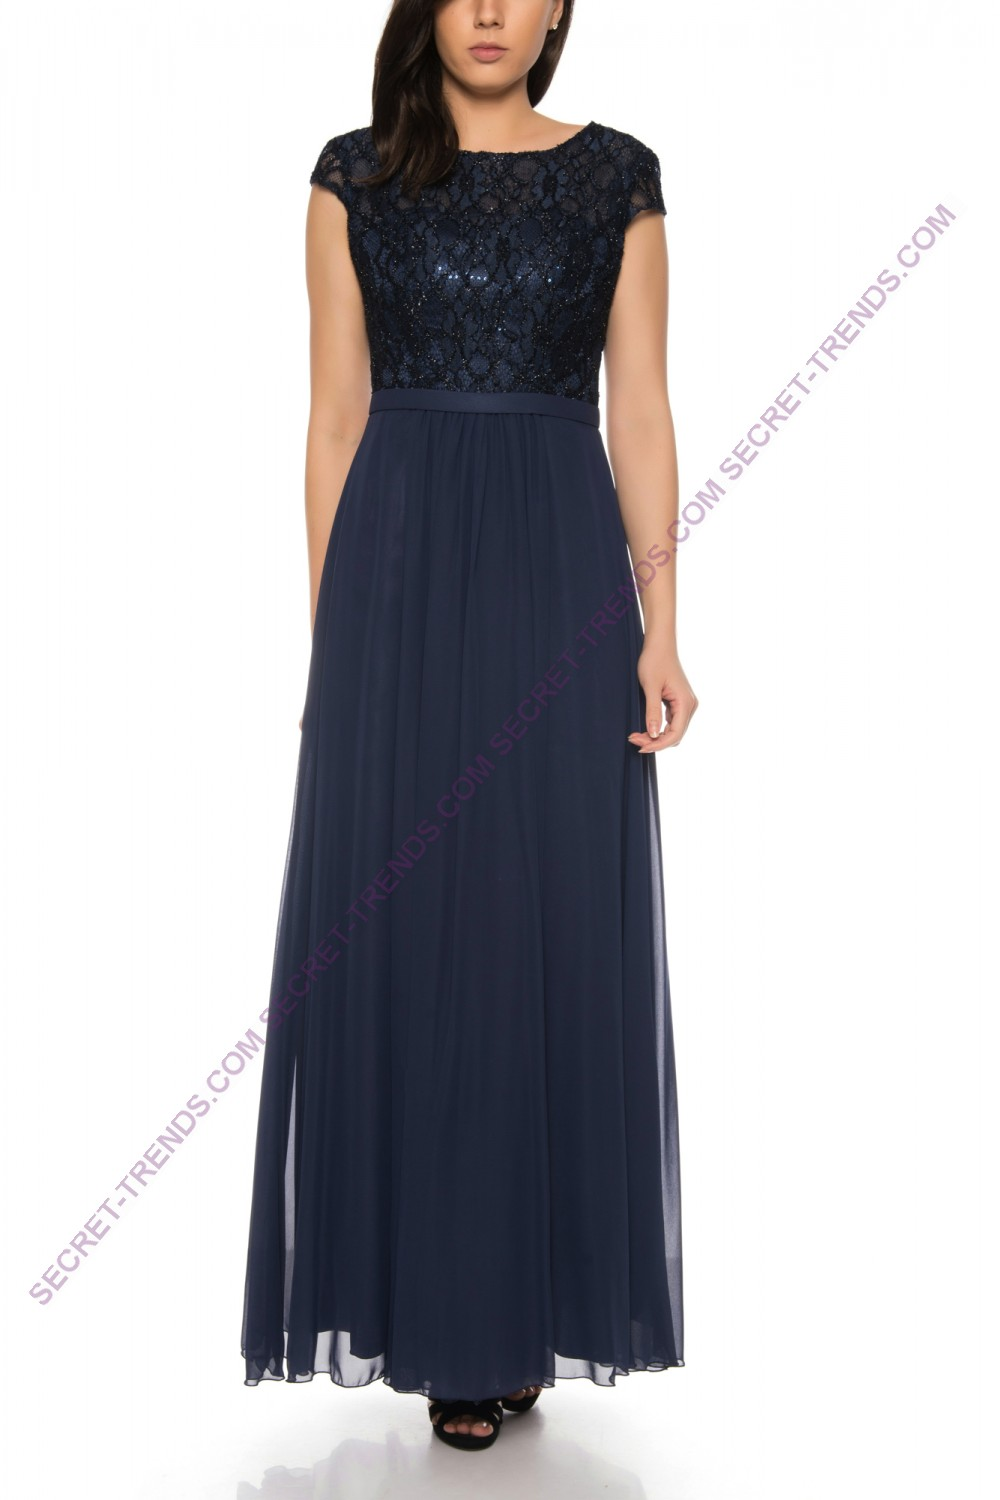 Juju & Christine Chiffon Evening Dress with Lace Top R1599